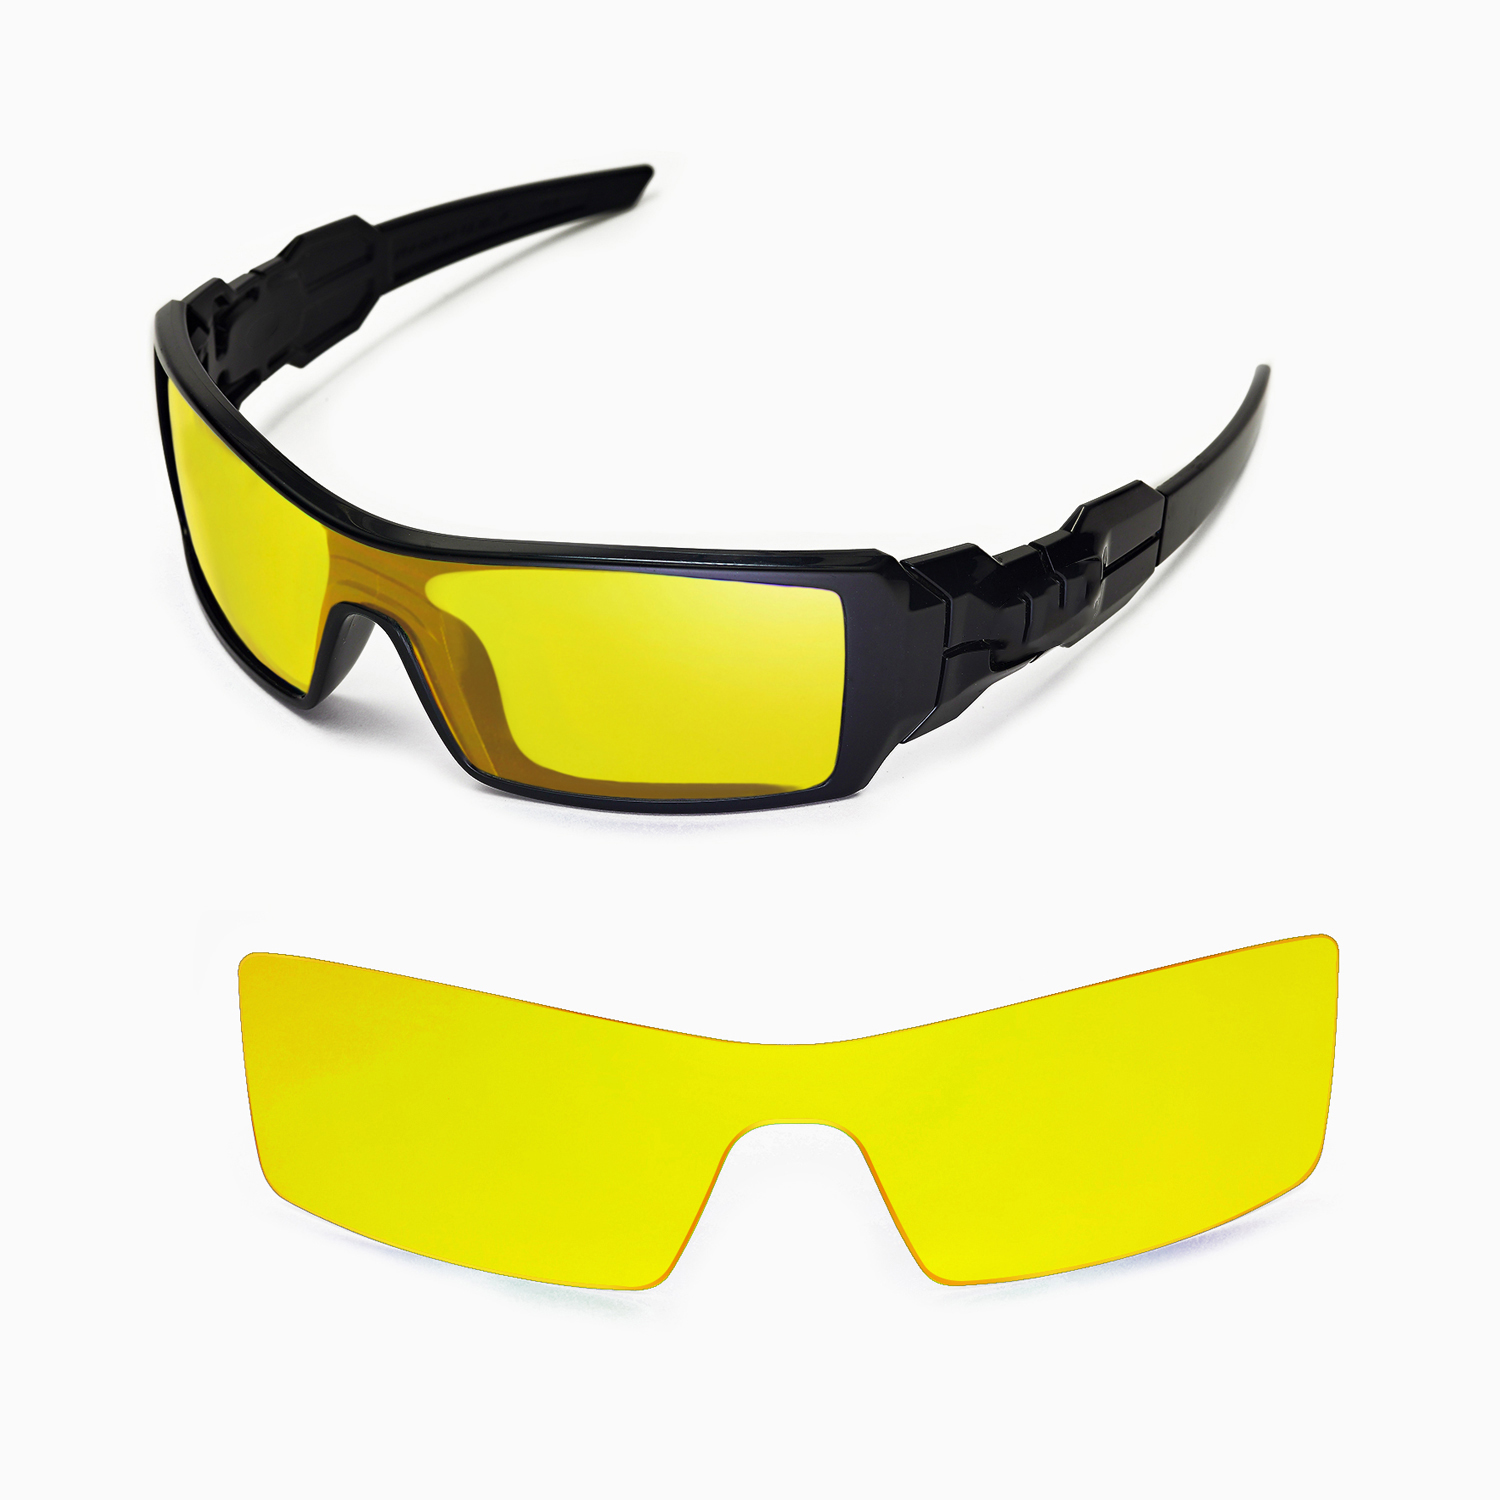 Walleva Yellow Lenses for Oakley Oil Rig x1; Walleva Microfiber Lens  Cleaning Cloth x1. main image